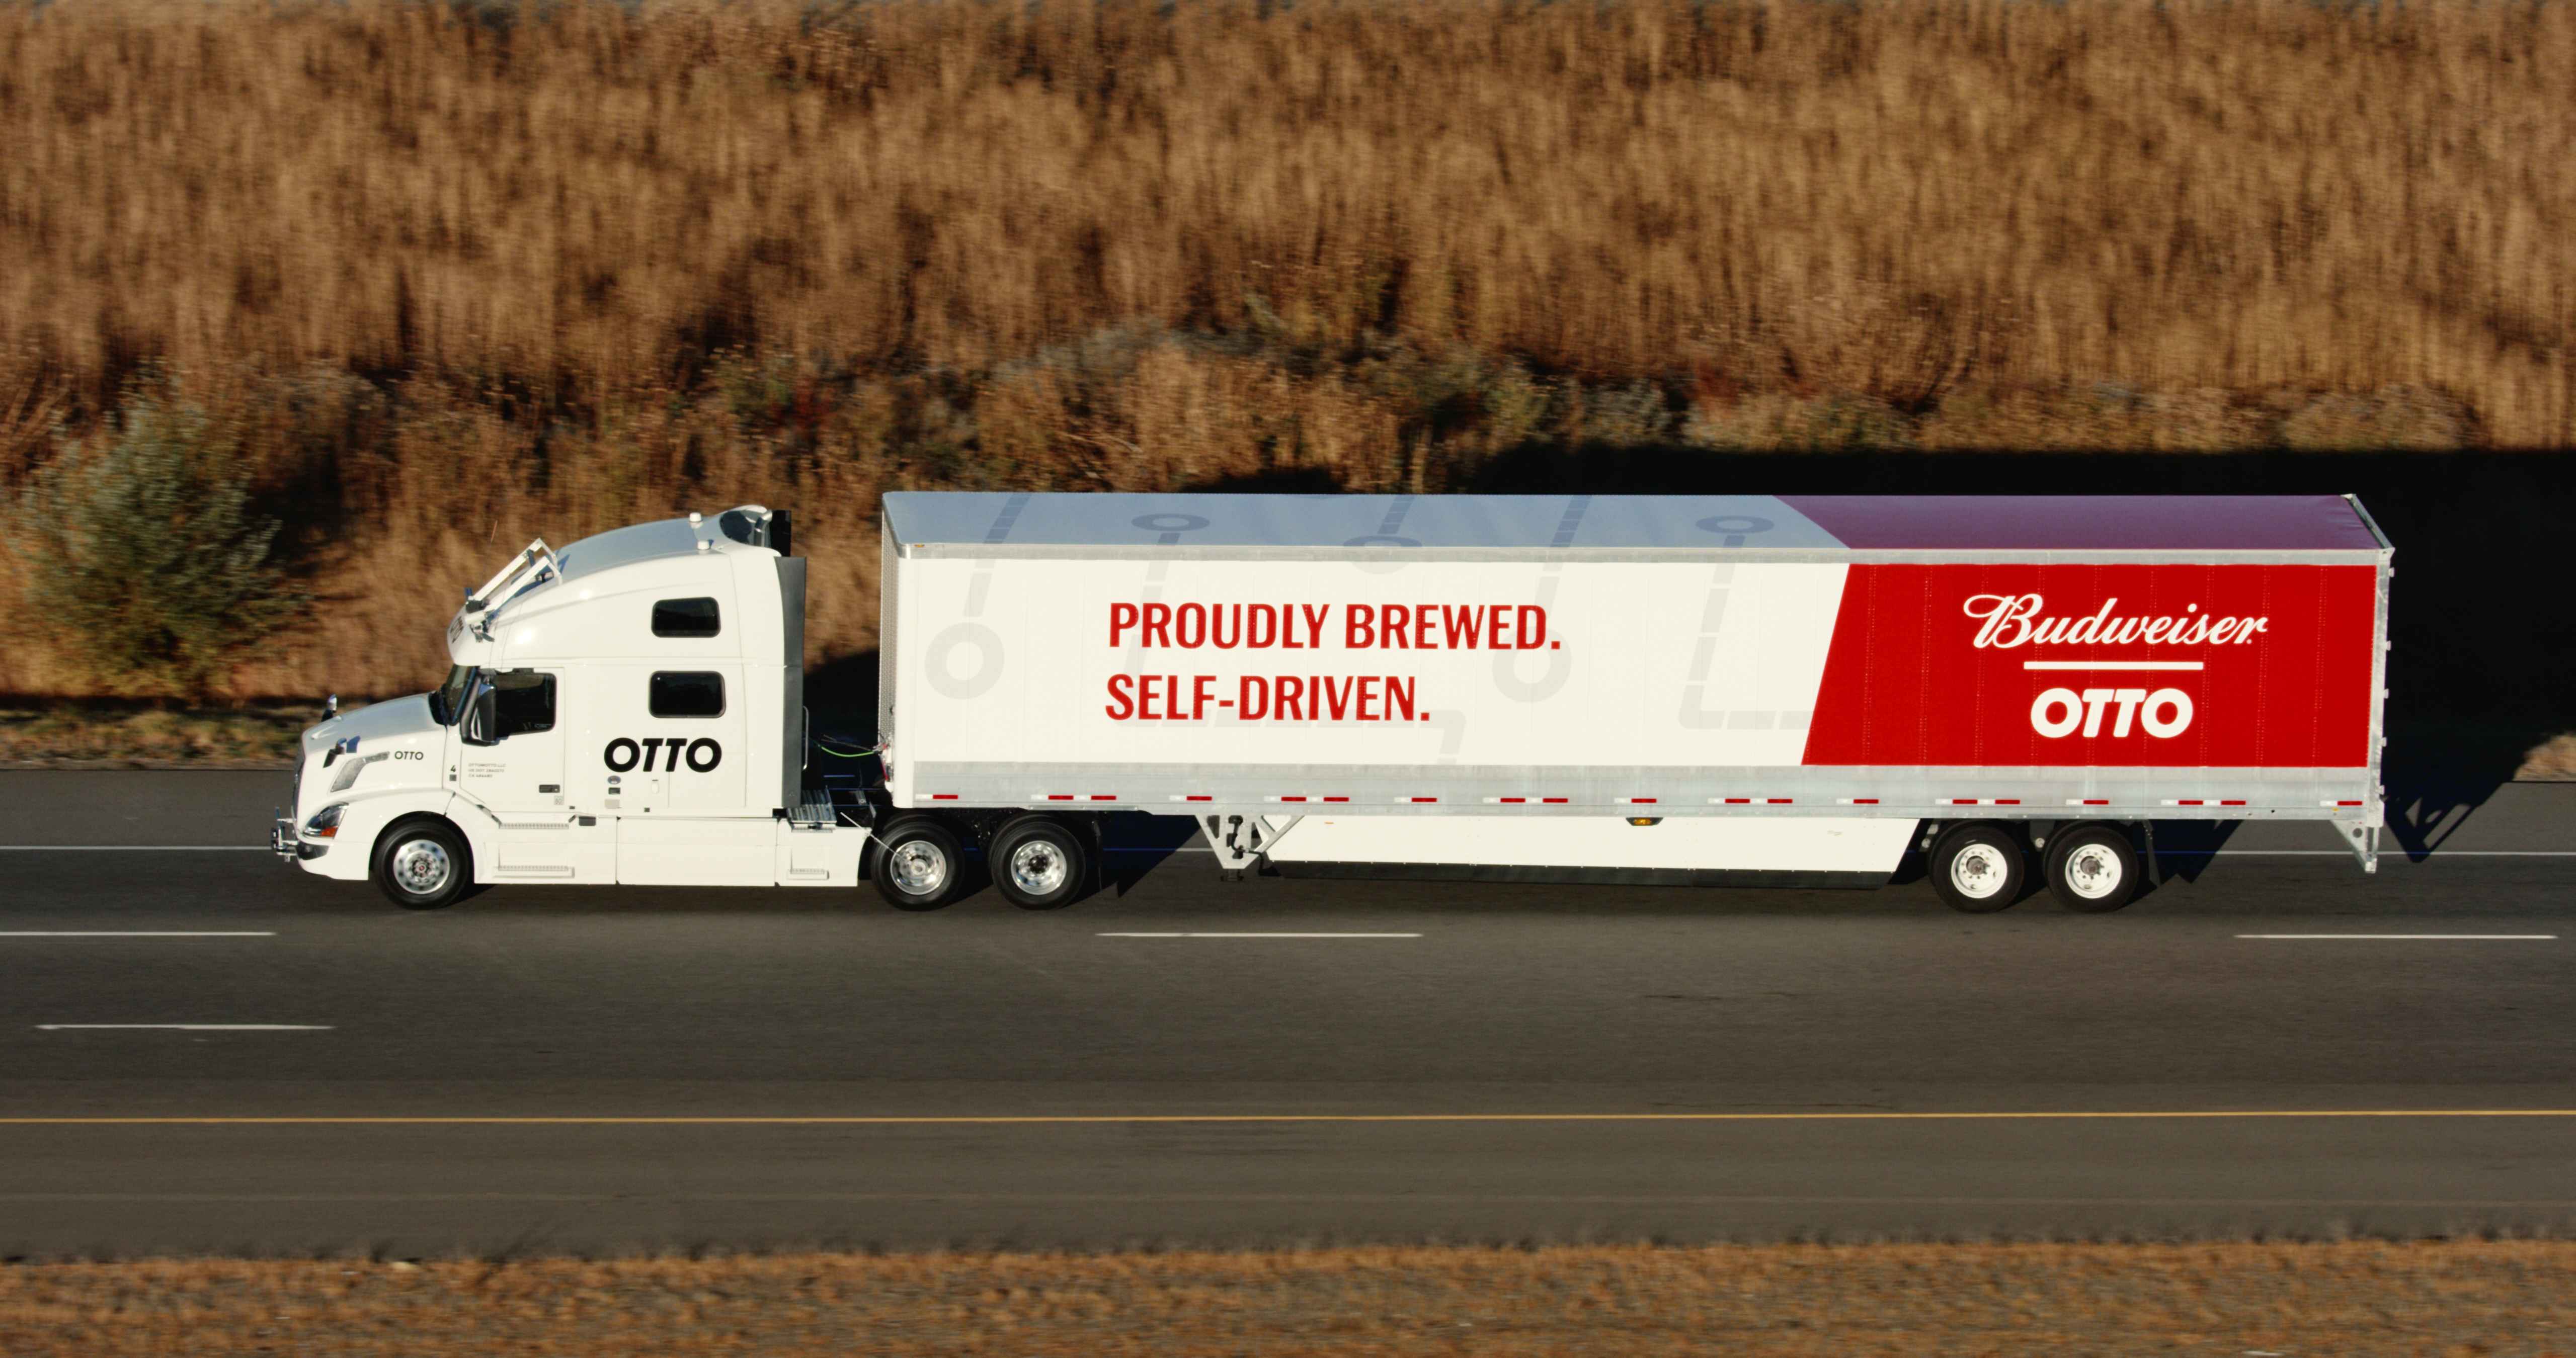 Otto Self-Driving Beer Delivery